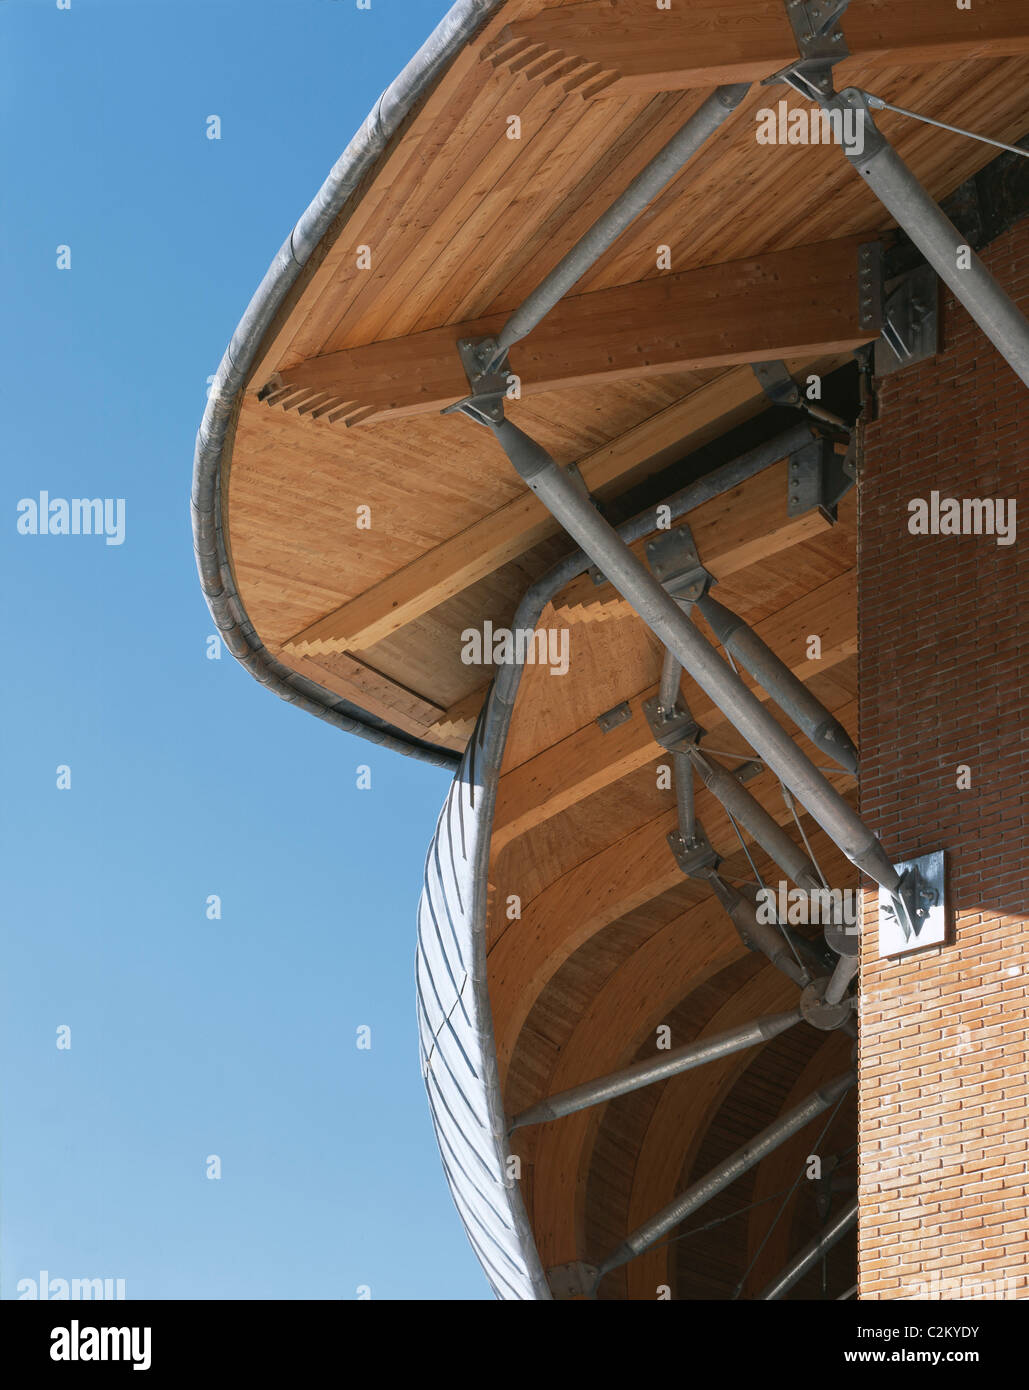 Auditorium, Parco della Musica, Rome, 1997-2002. Detail of roof showing structure in wood and galvanized steel beams. - Stock Image